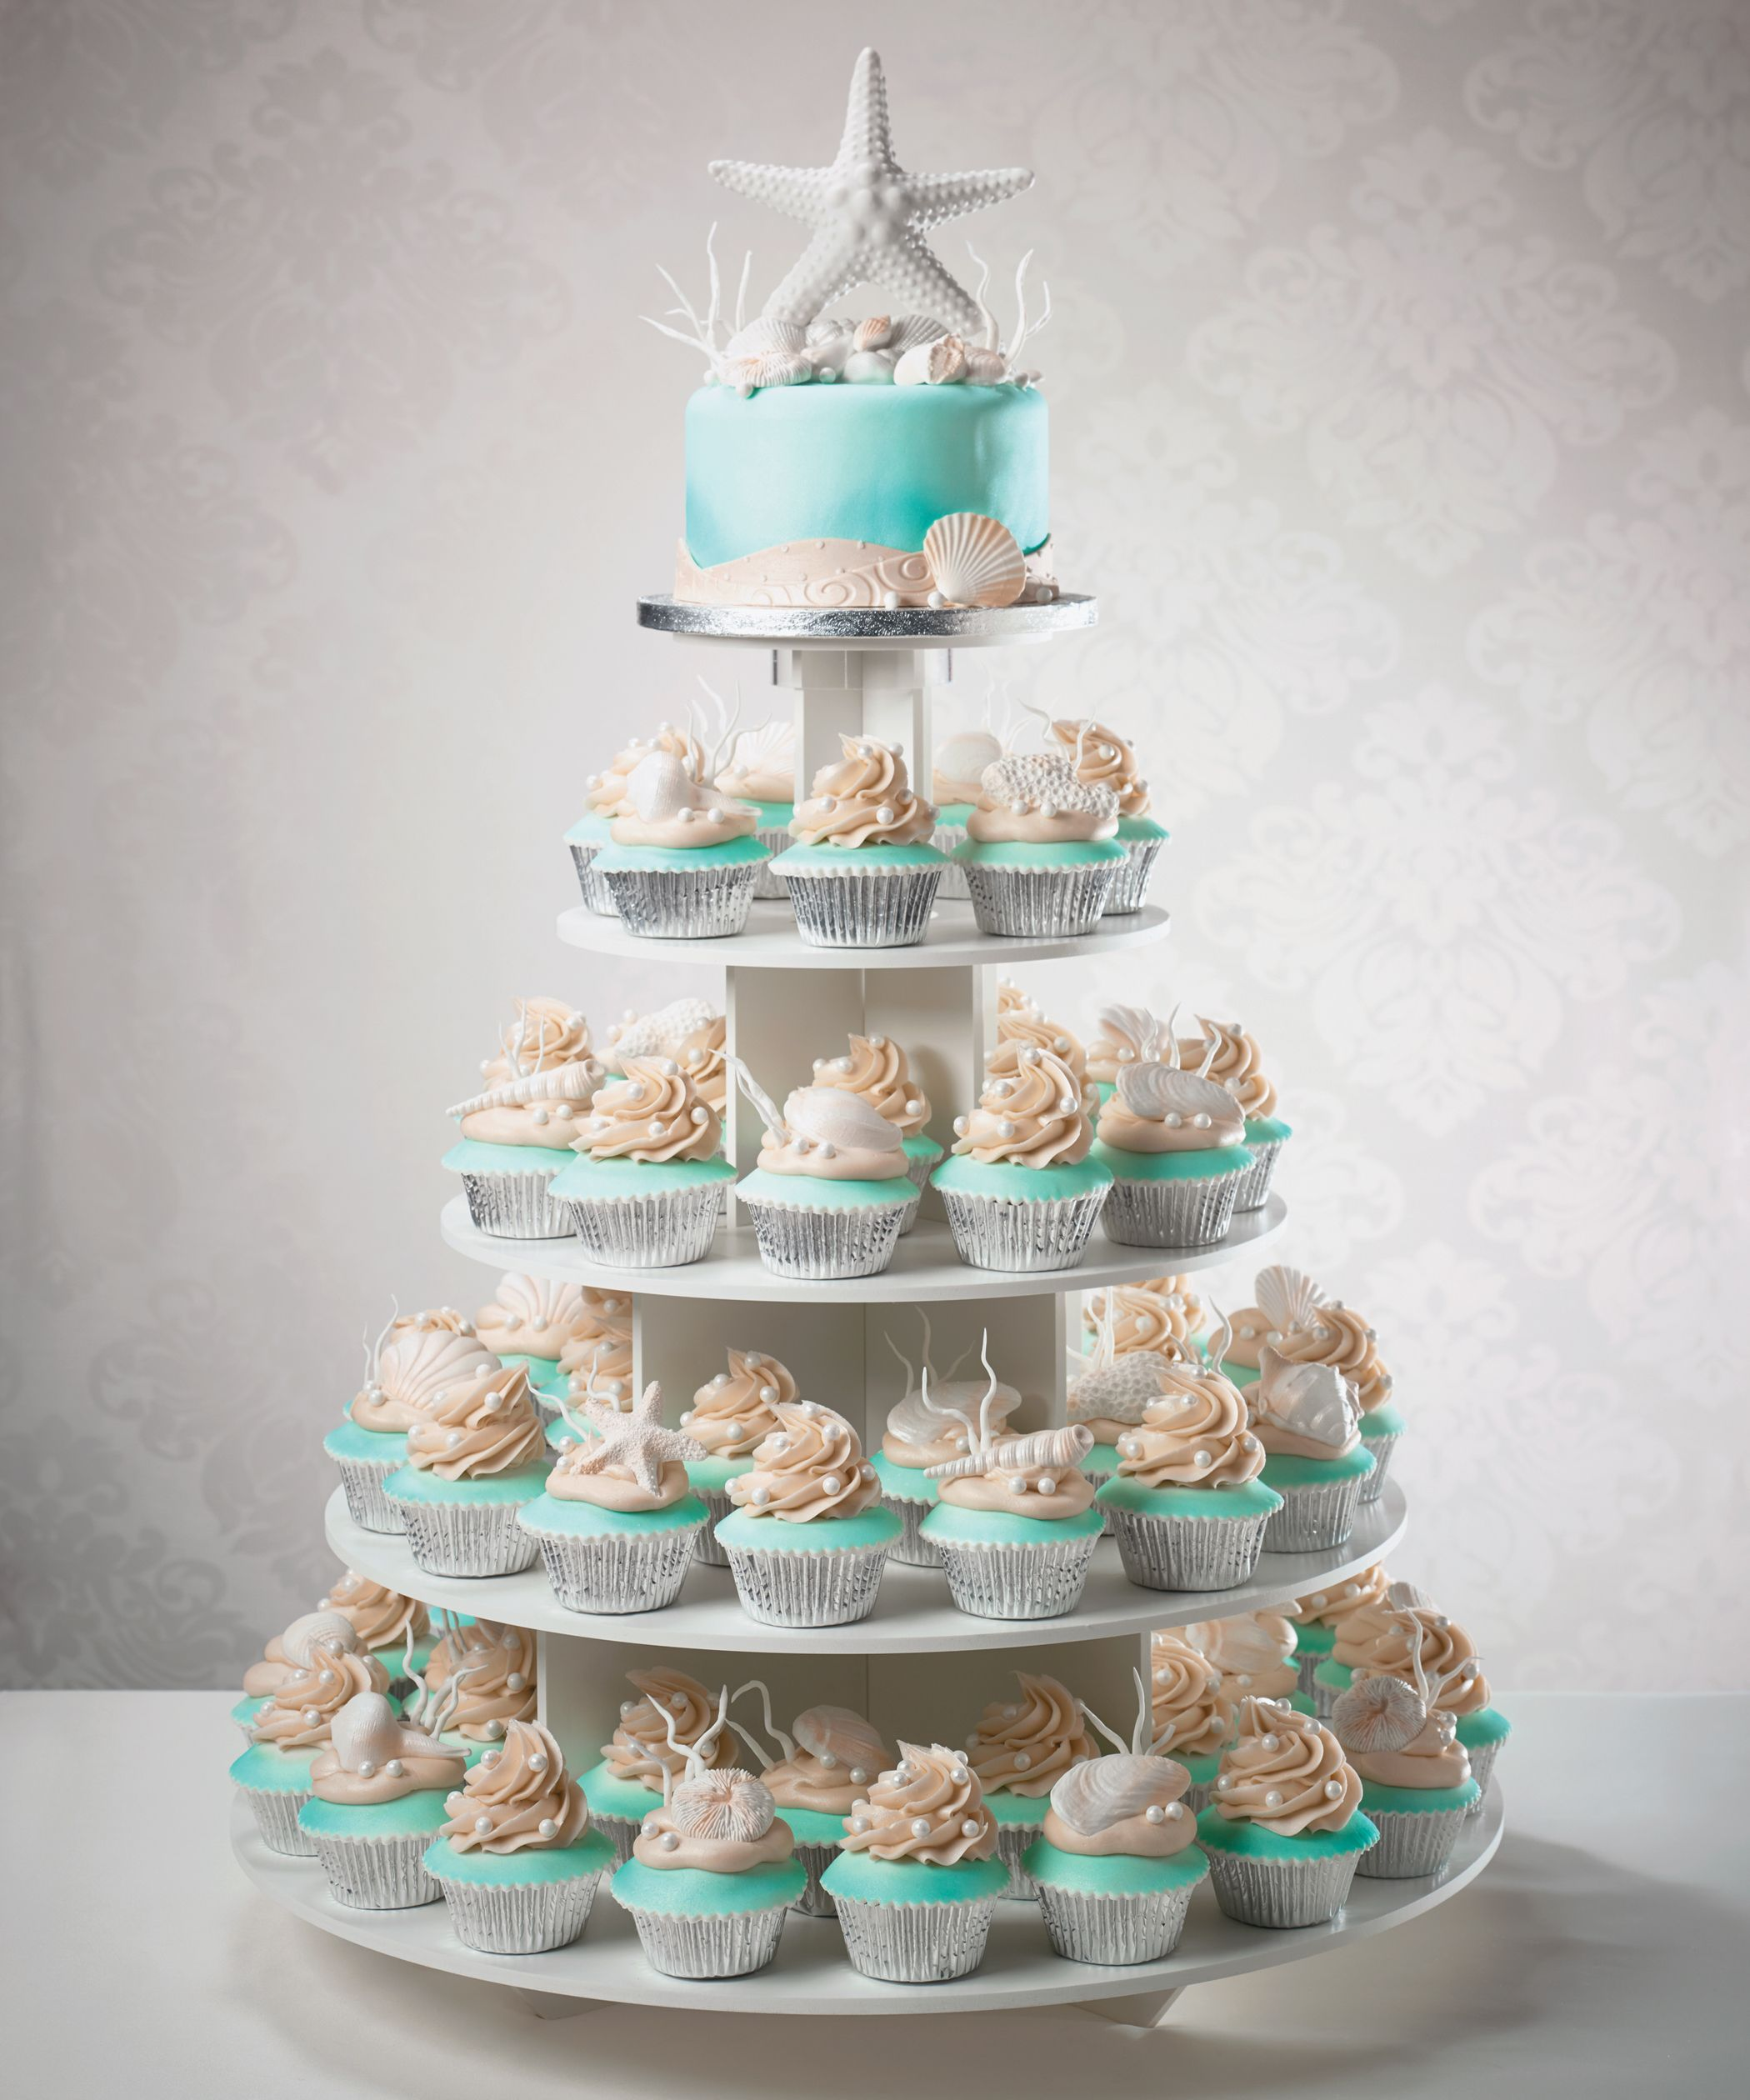 Wedding cake and cupcake tower for a beach destination wedding | "|2100|2520|?|False|818c20bbd234cd6b2100208b649d5803|False|UNLIKELY|0.3399716913700104